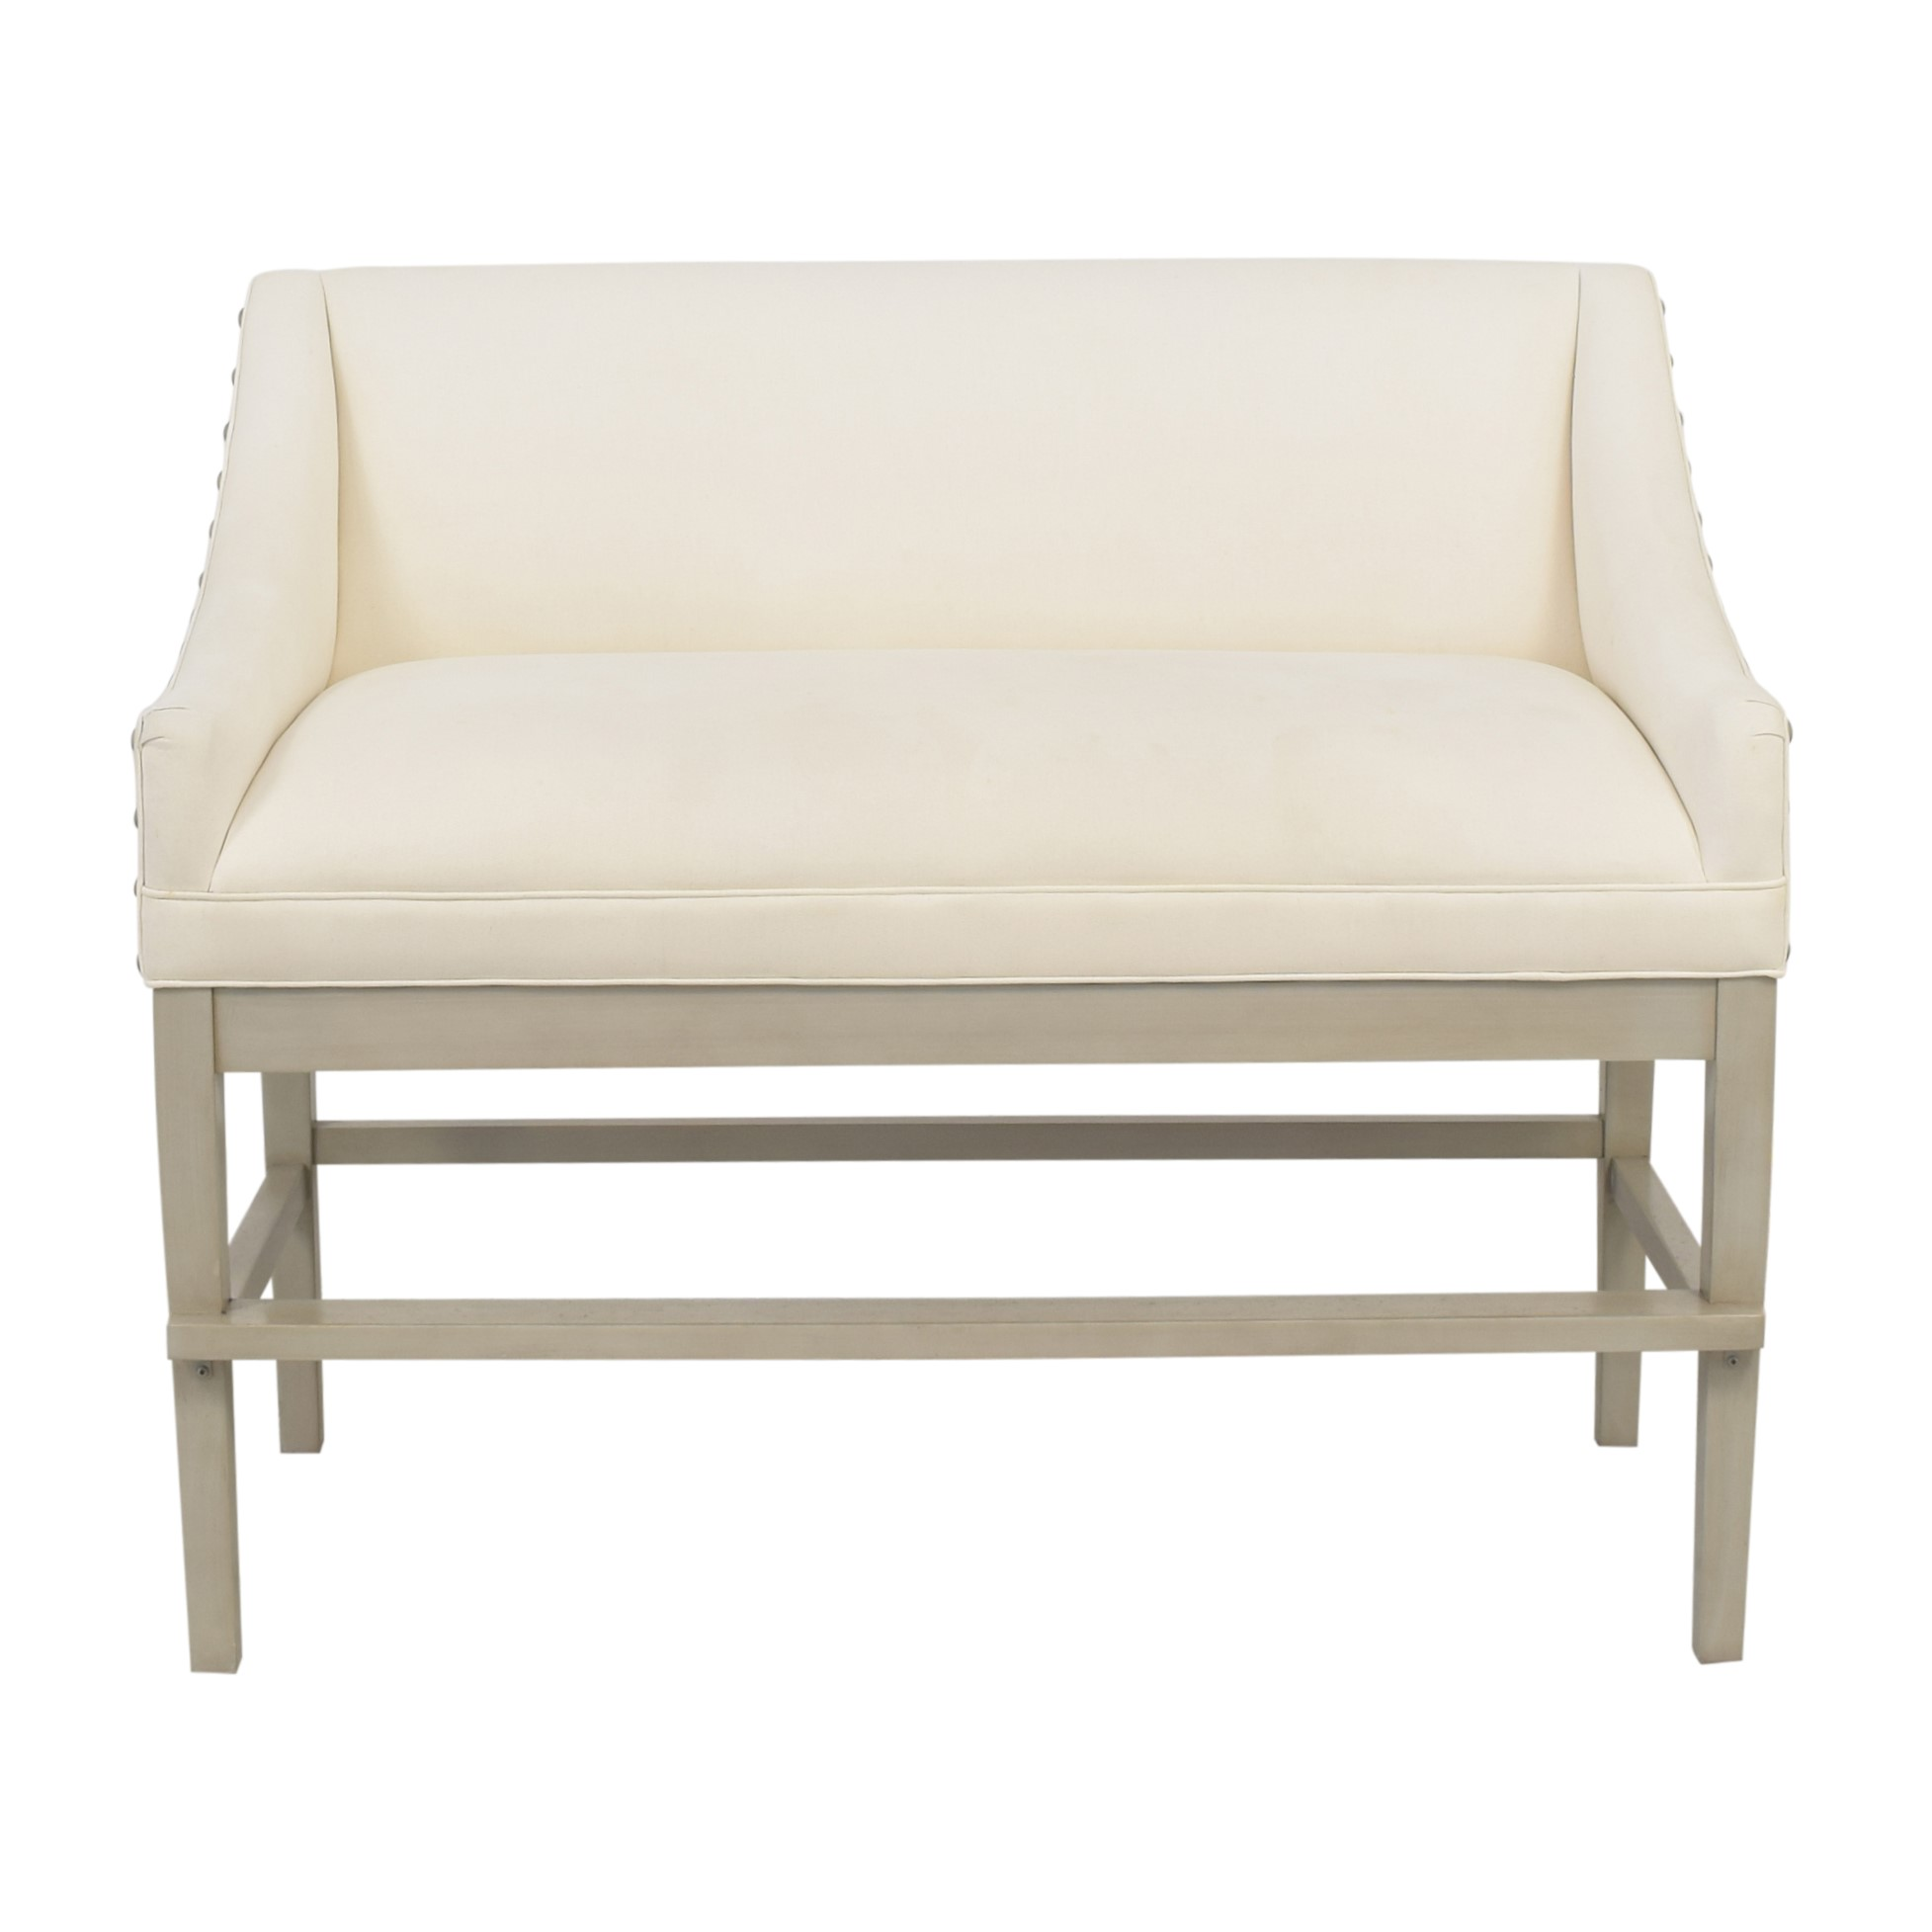 Ballard Designs Ballard Designs Marcello Counter Bench nyc